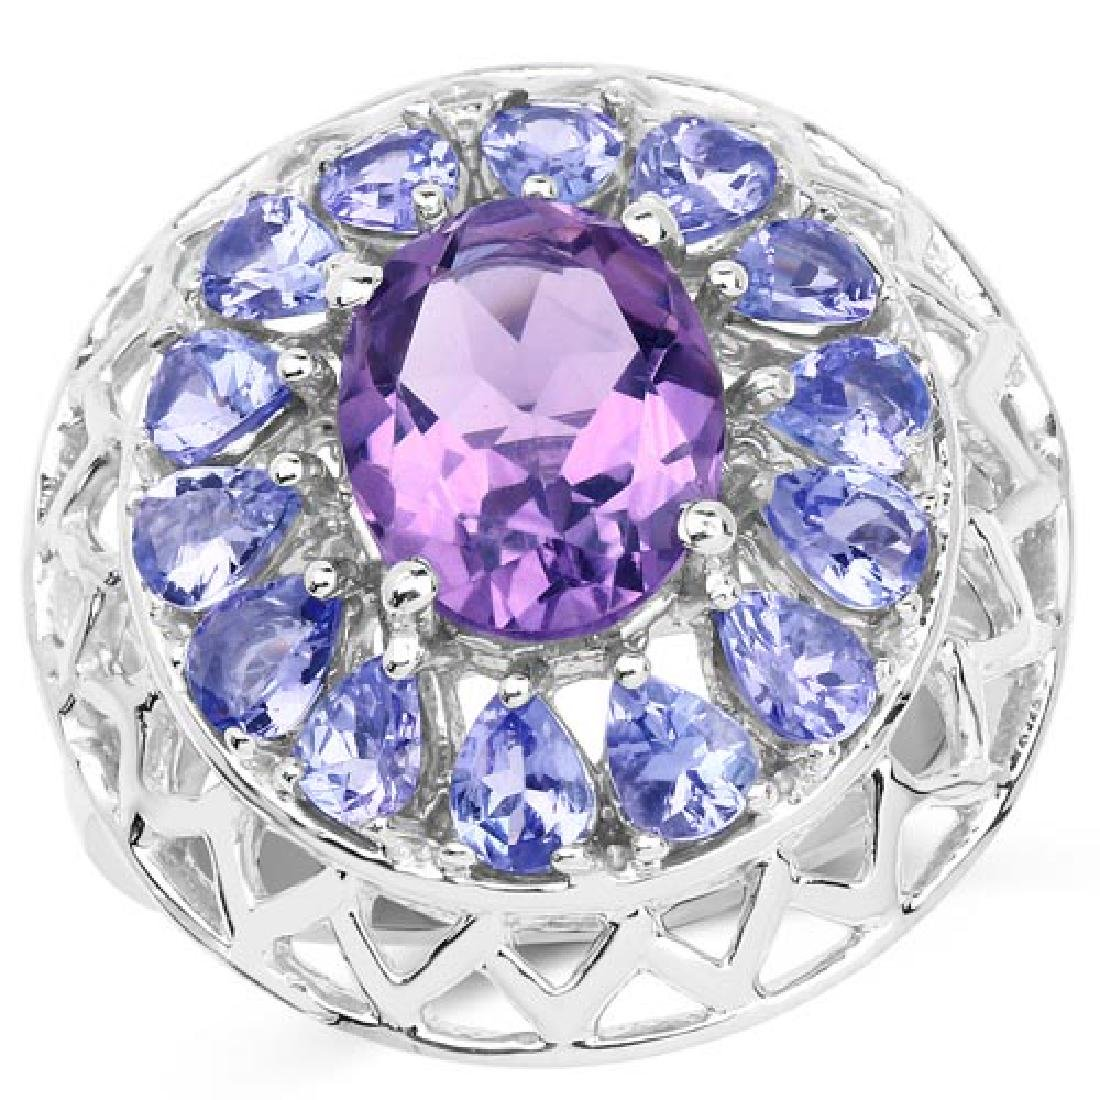 4.11 Carat Genuine Amethyst and Tanzanite .925 Sterling